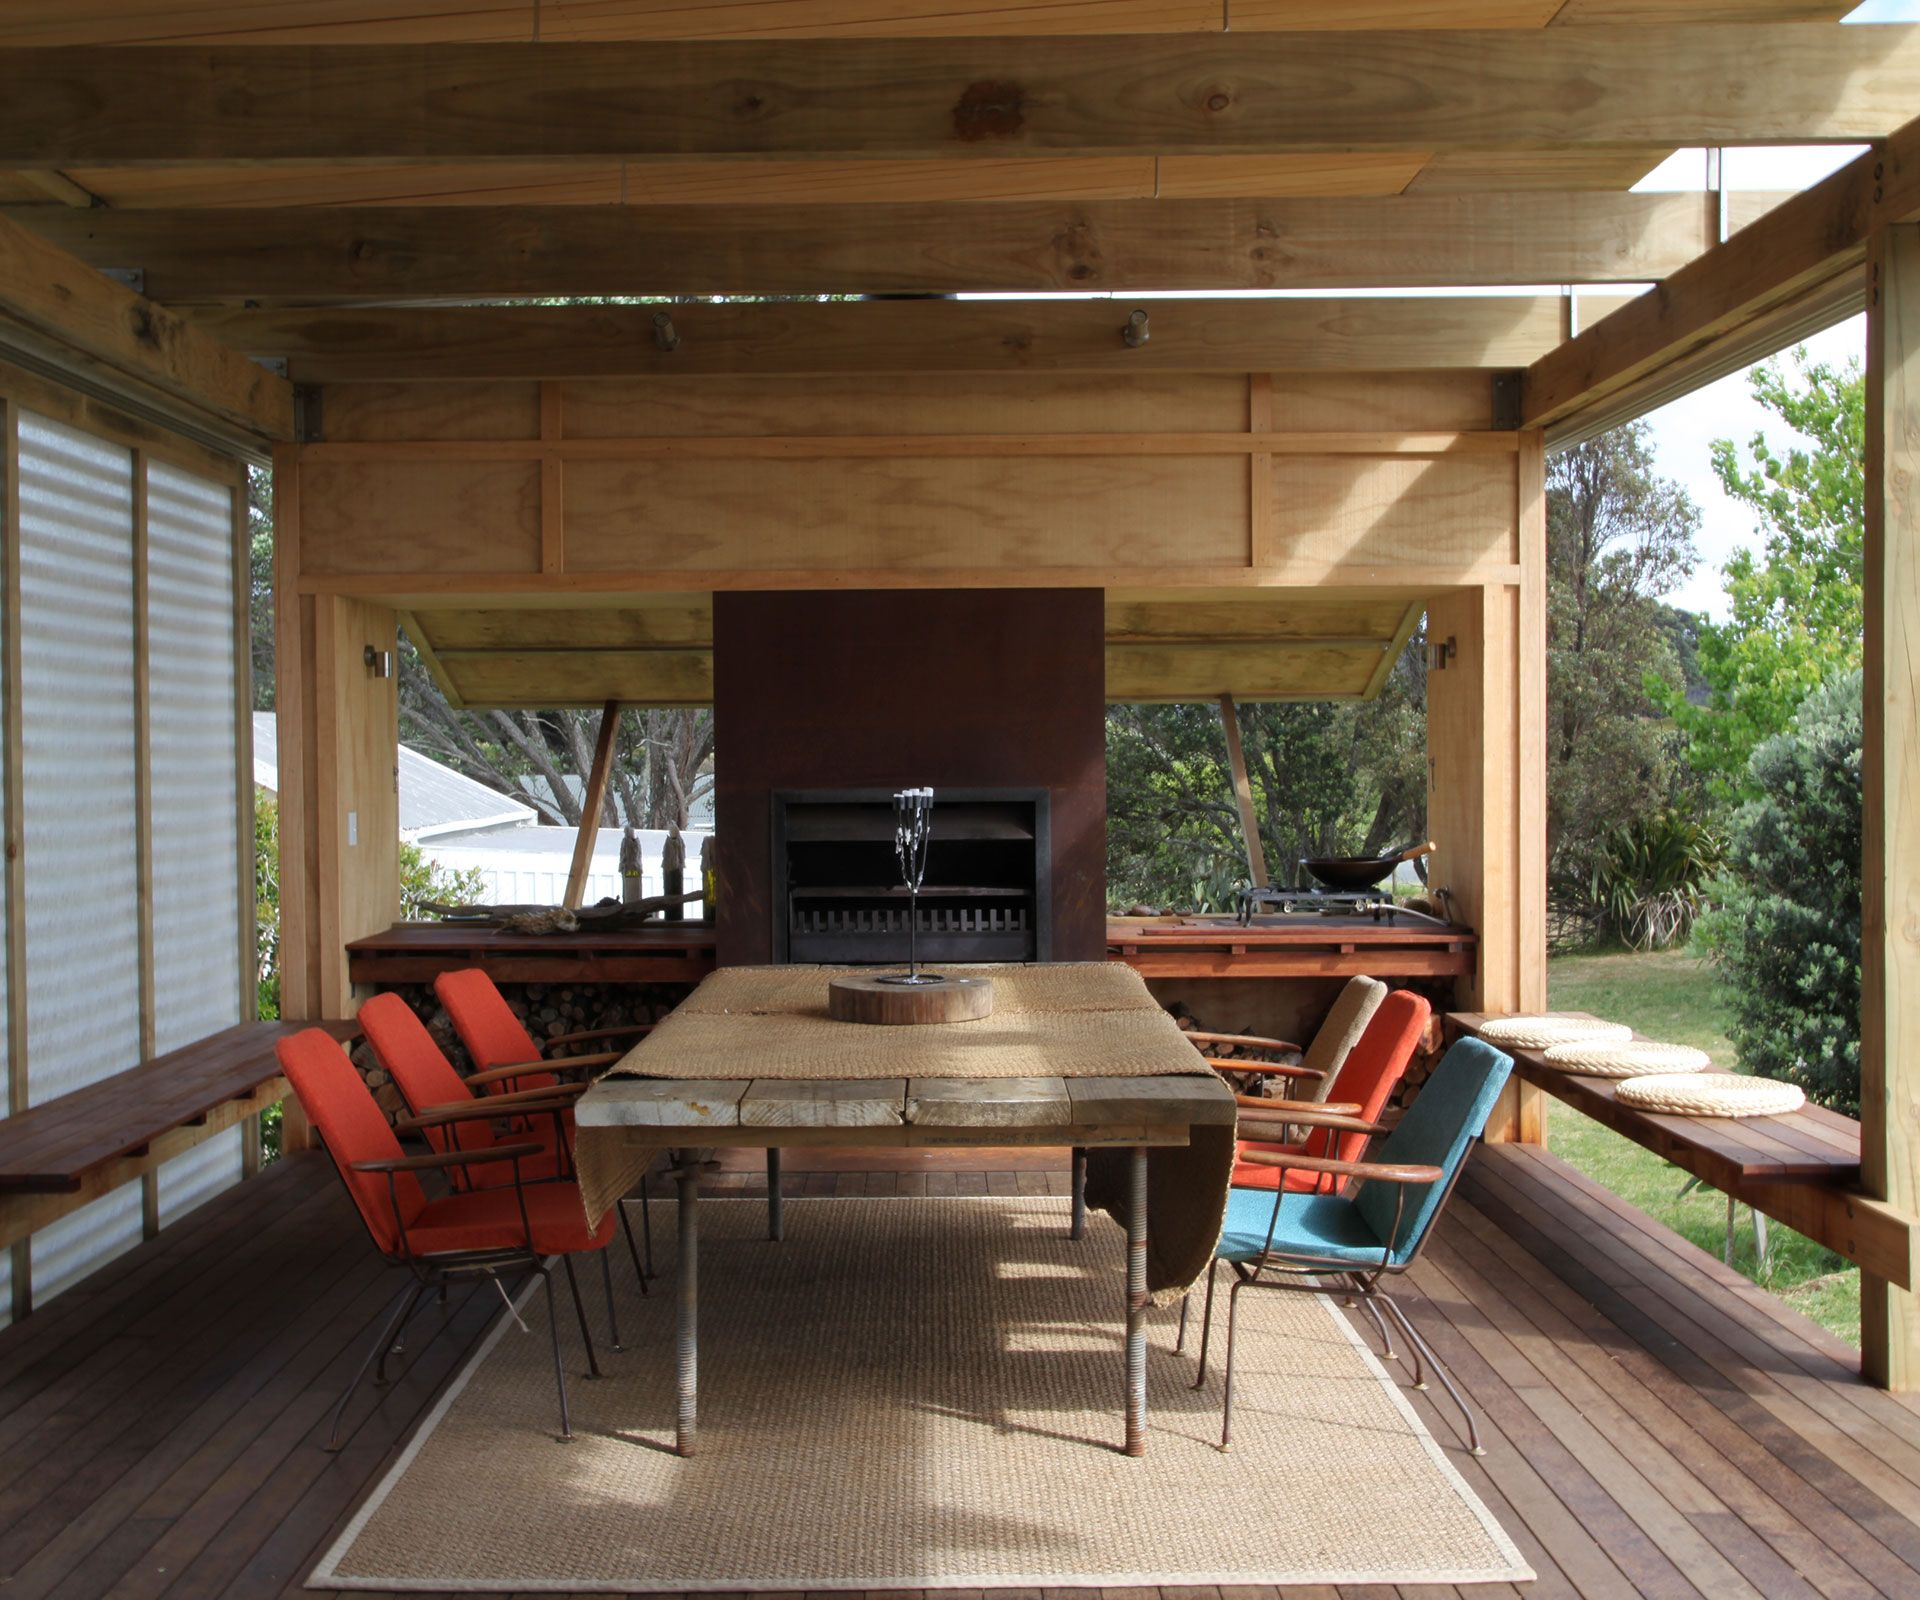 Tiny Home Designs: Be In To Win An Outdoor Furniture Package Worth $5000